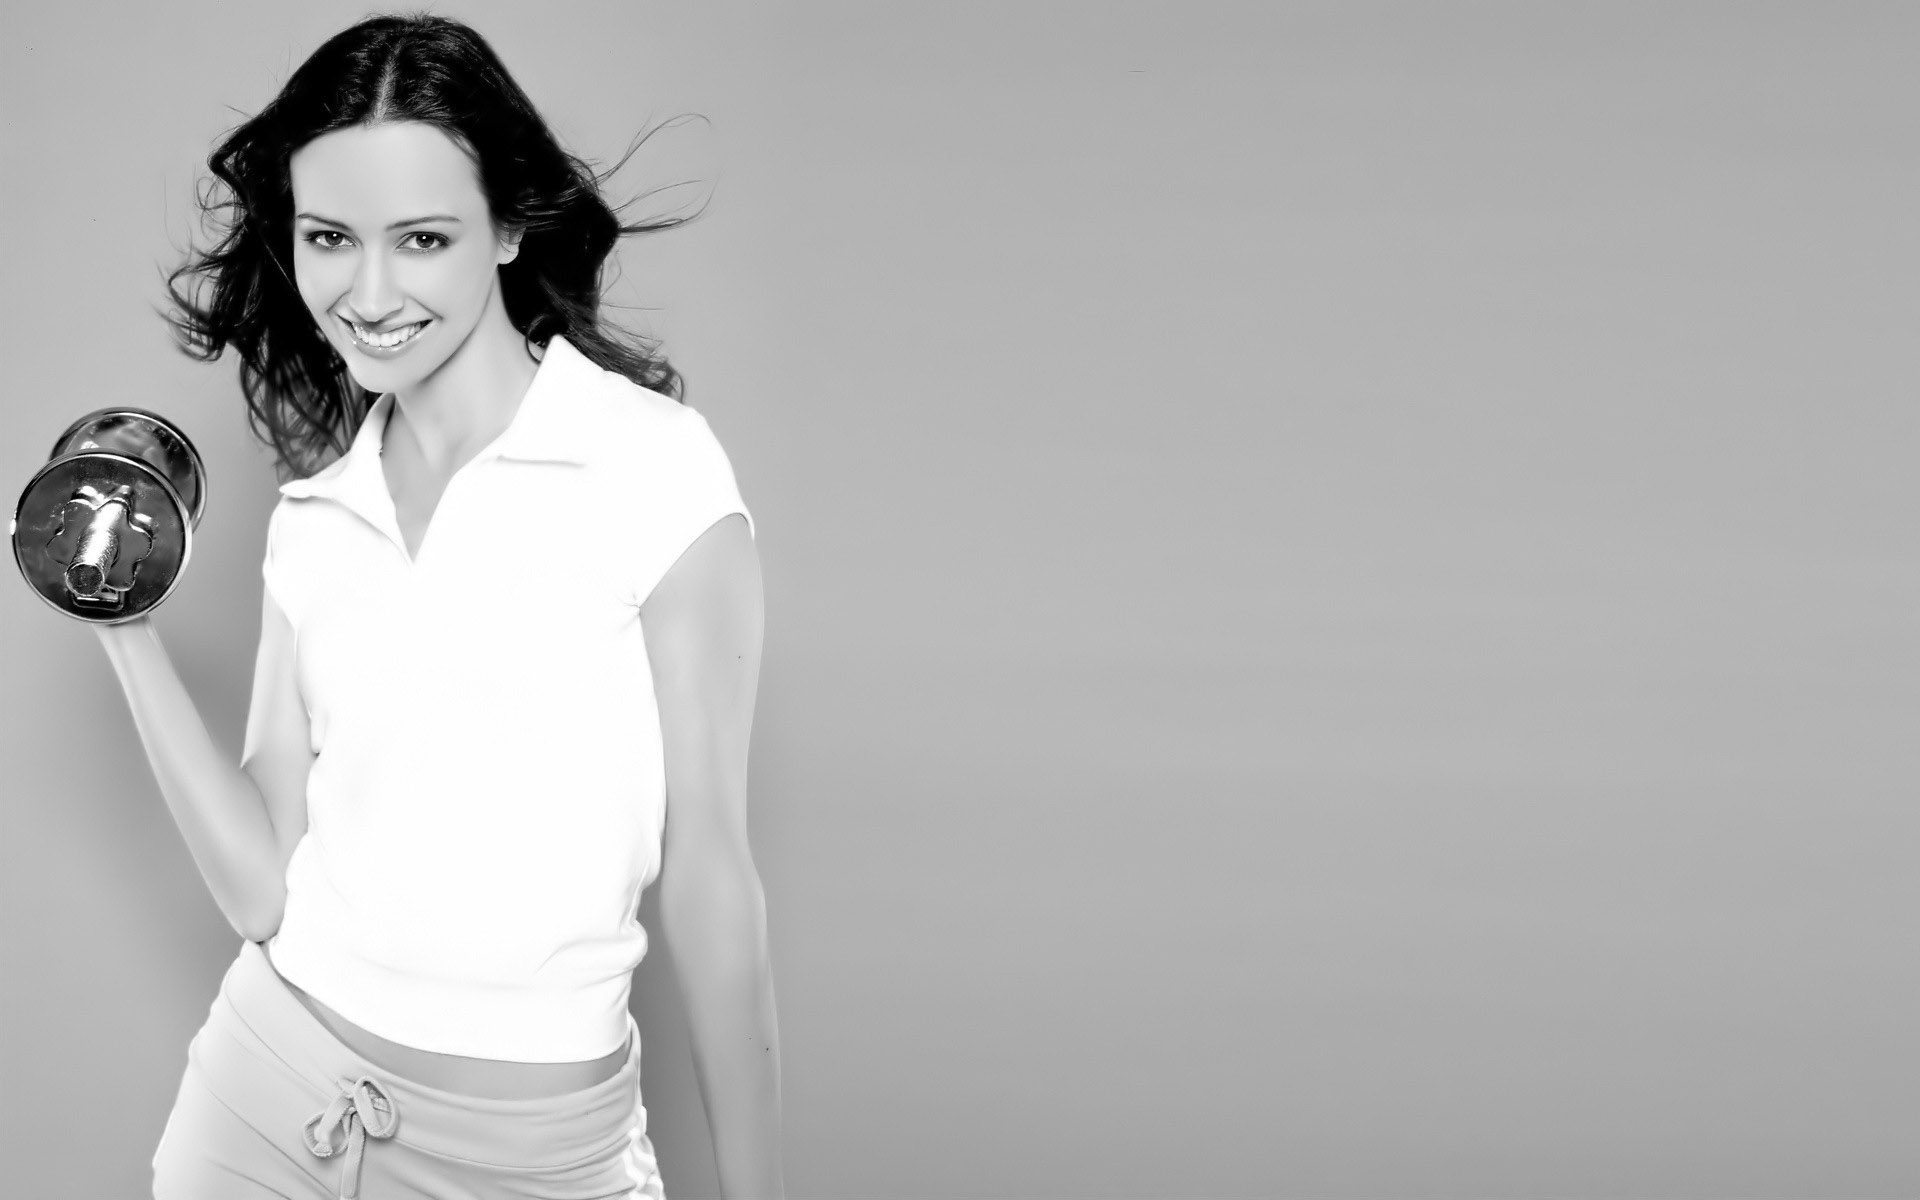 1920x1200 - Amy Acker Wallpapers 29